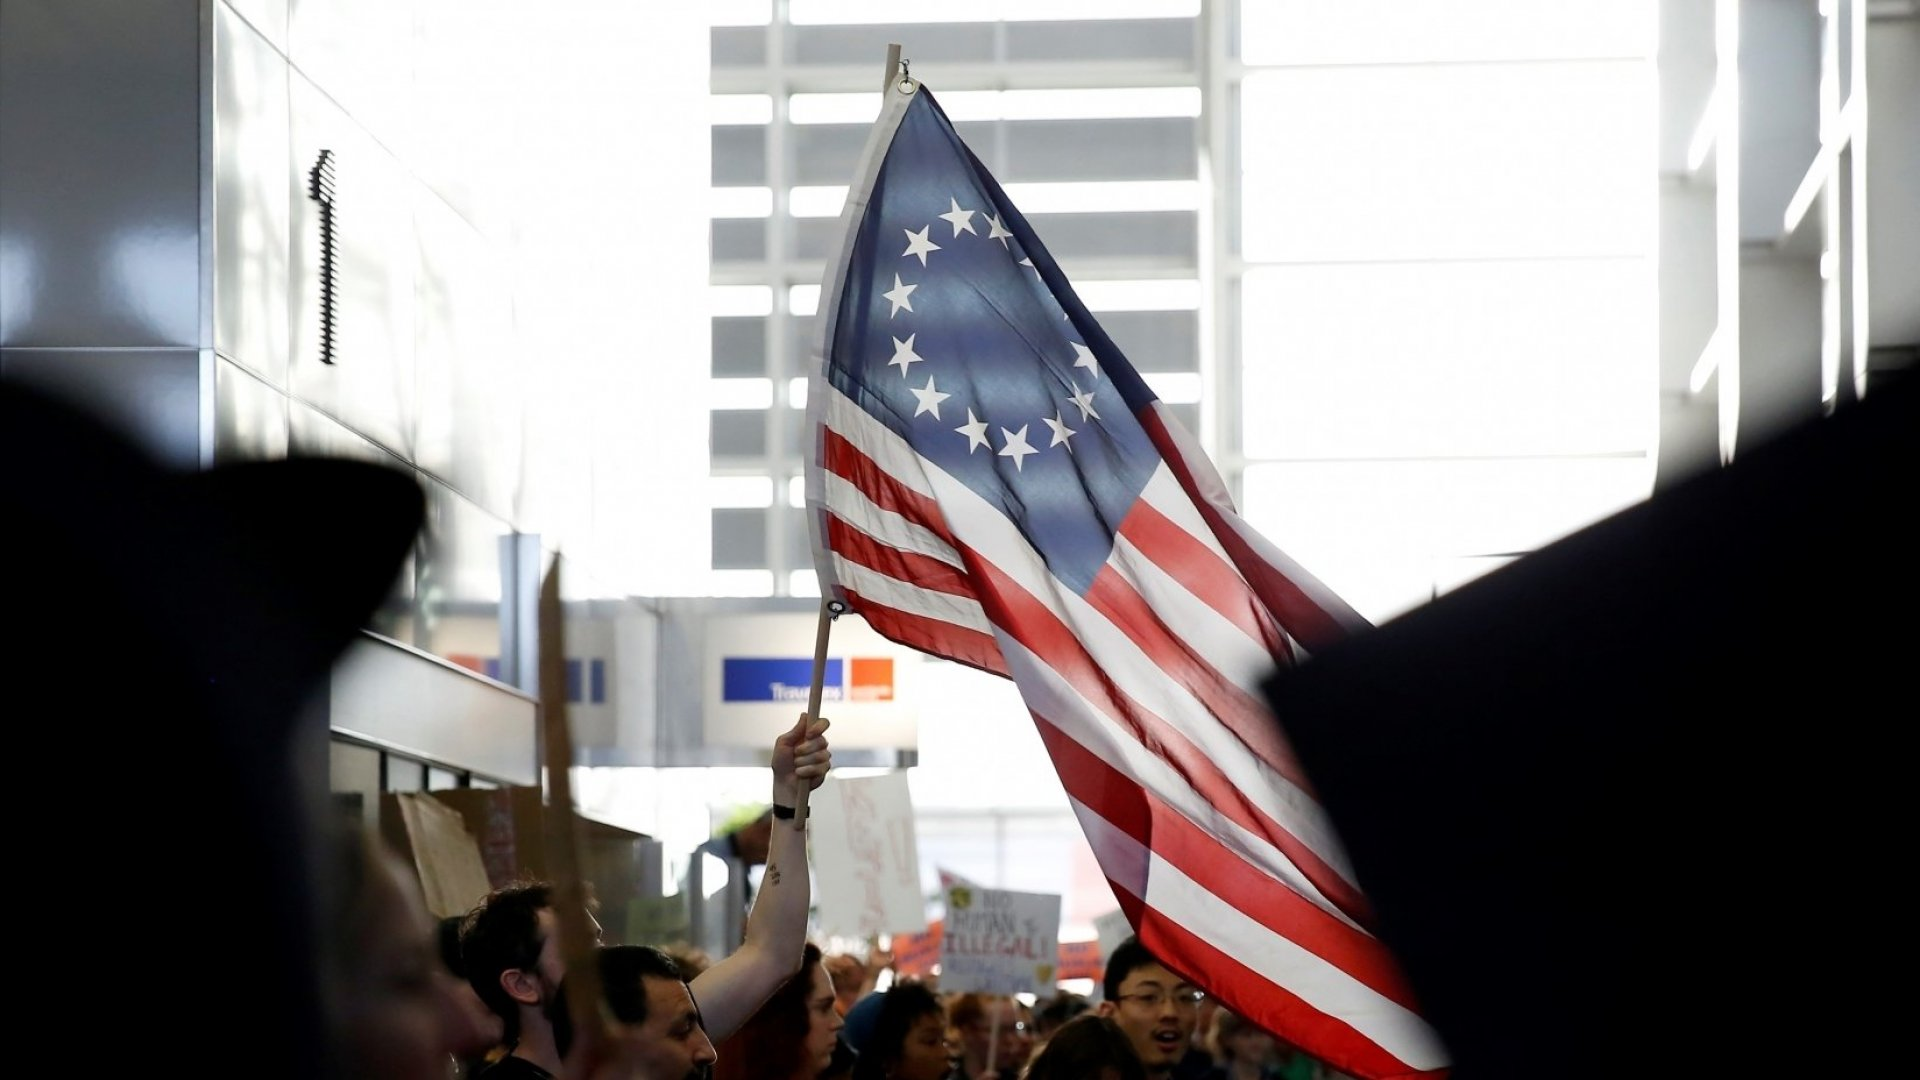 Demonstrators against President Donald Trump's Muslim Ban come together at 2nd day of protests at San Francisco International Airport on January 29, 2017.